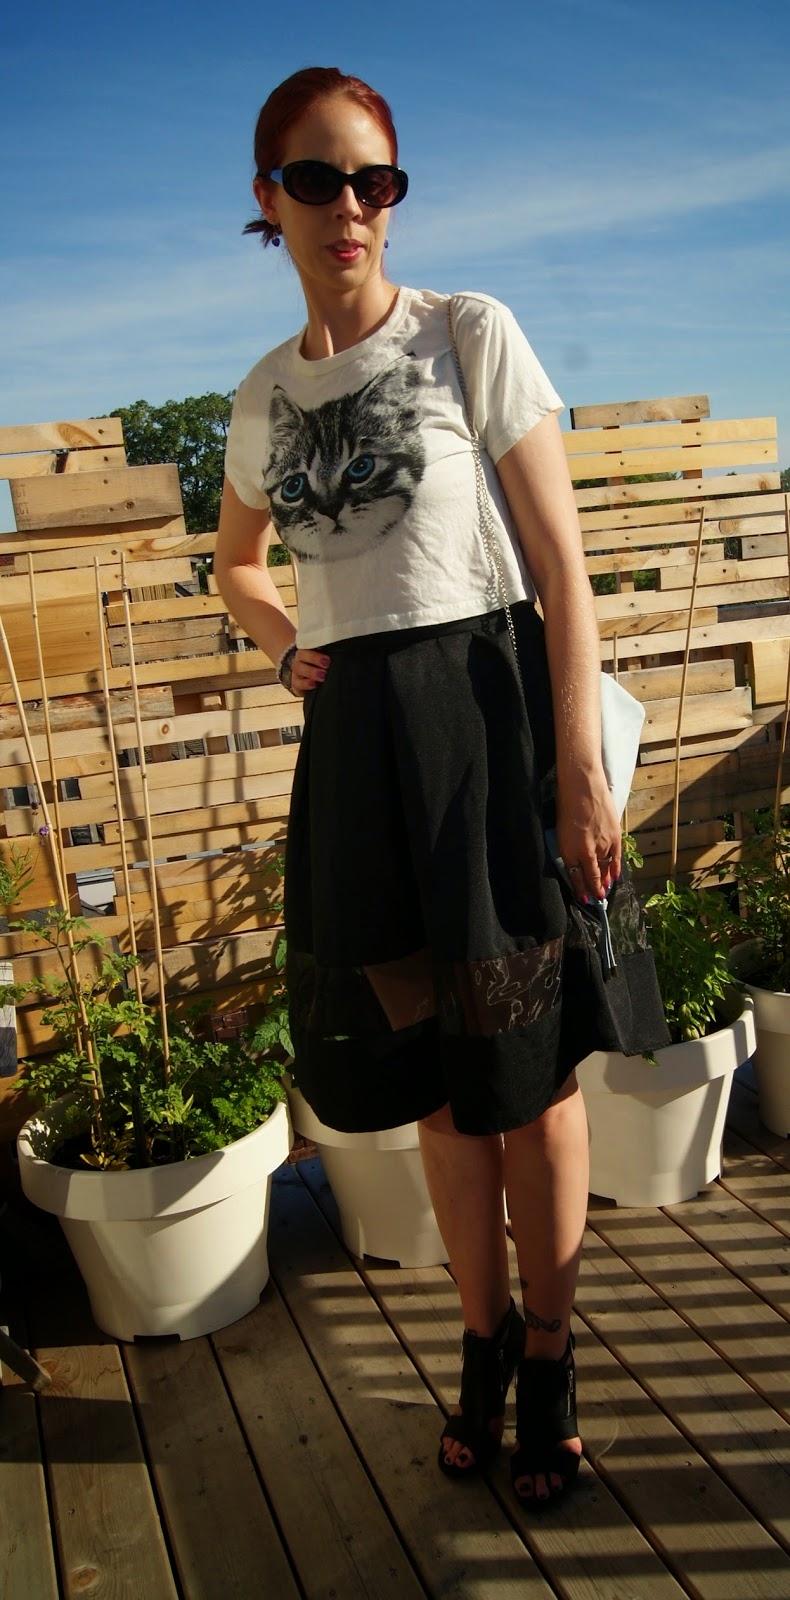 Chic, Sexy, + Fun!: Express Full Skirt, Forever 21 Crop Top and Shoes, H&M Purse, Shop For Jayu and Joseph Nogucci Bracelets, fashion, style, styletips, heels, clutch, cat,kitty,Toronto, Ontario, Canada, Melanie_ps, the purple scarf,